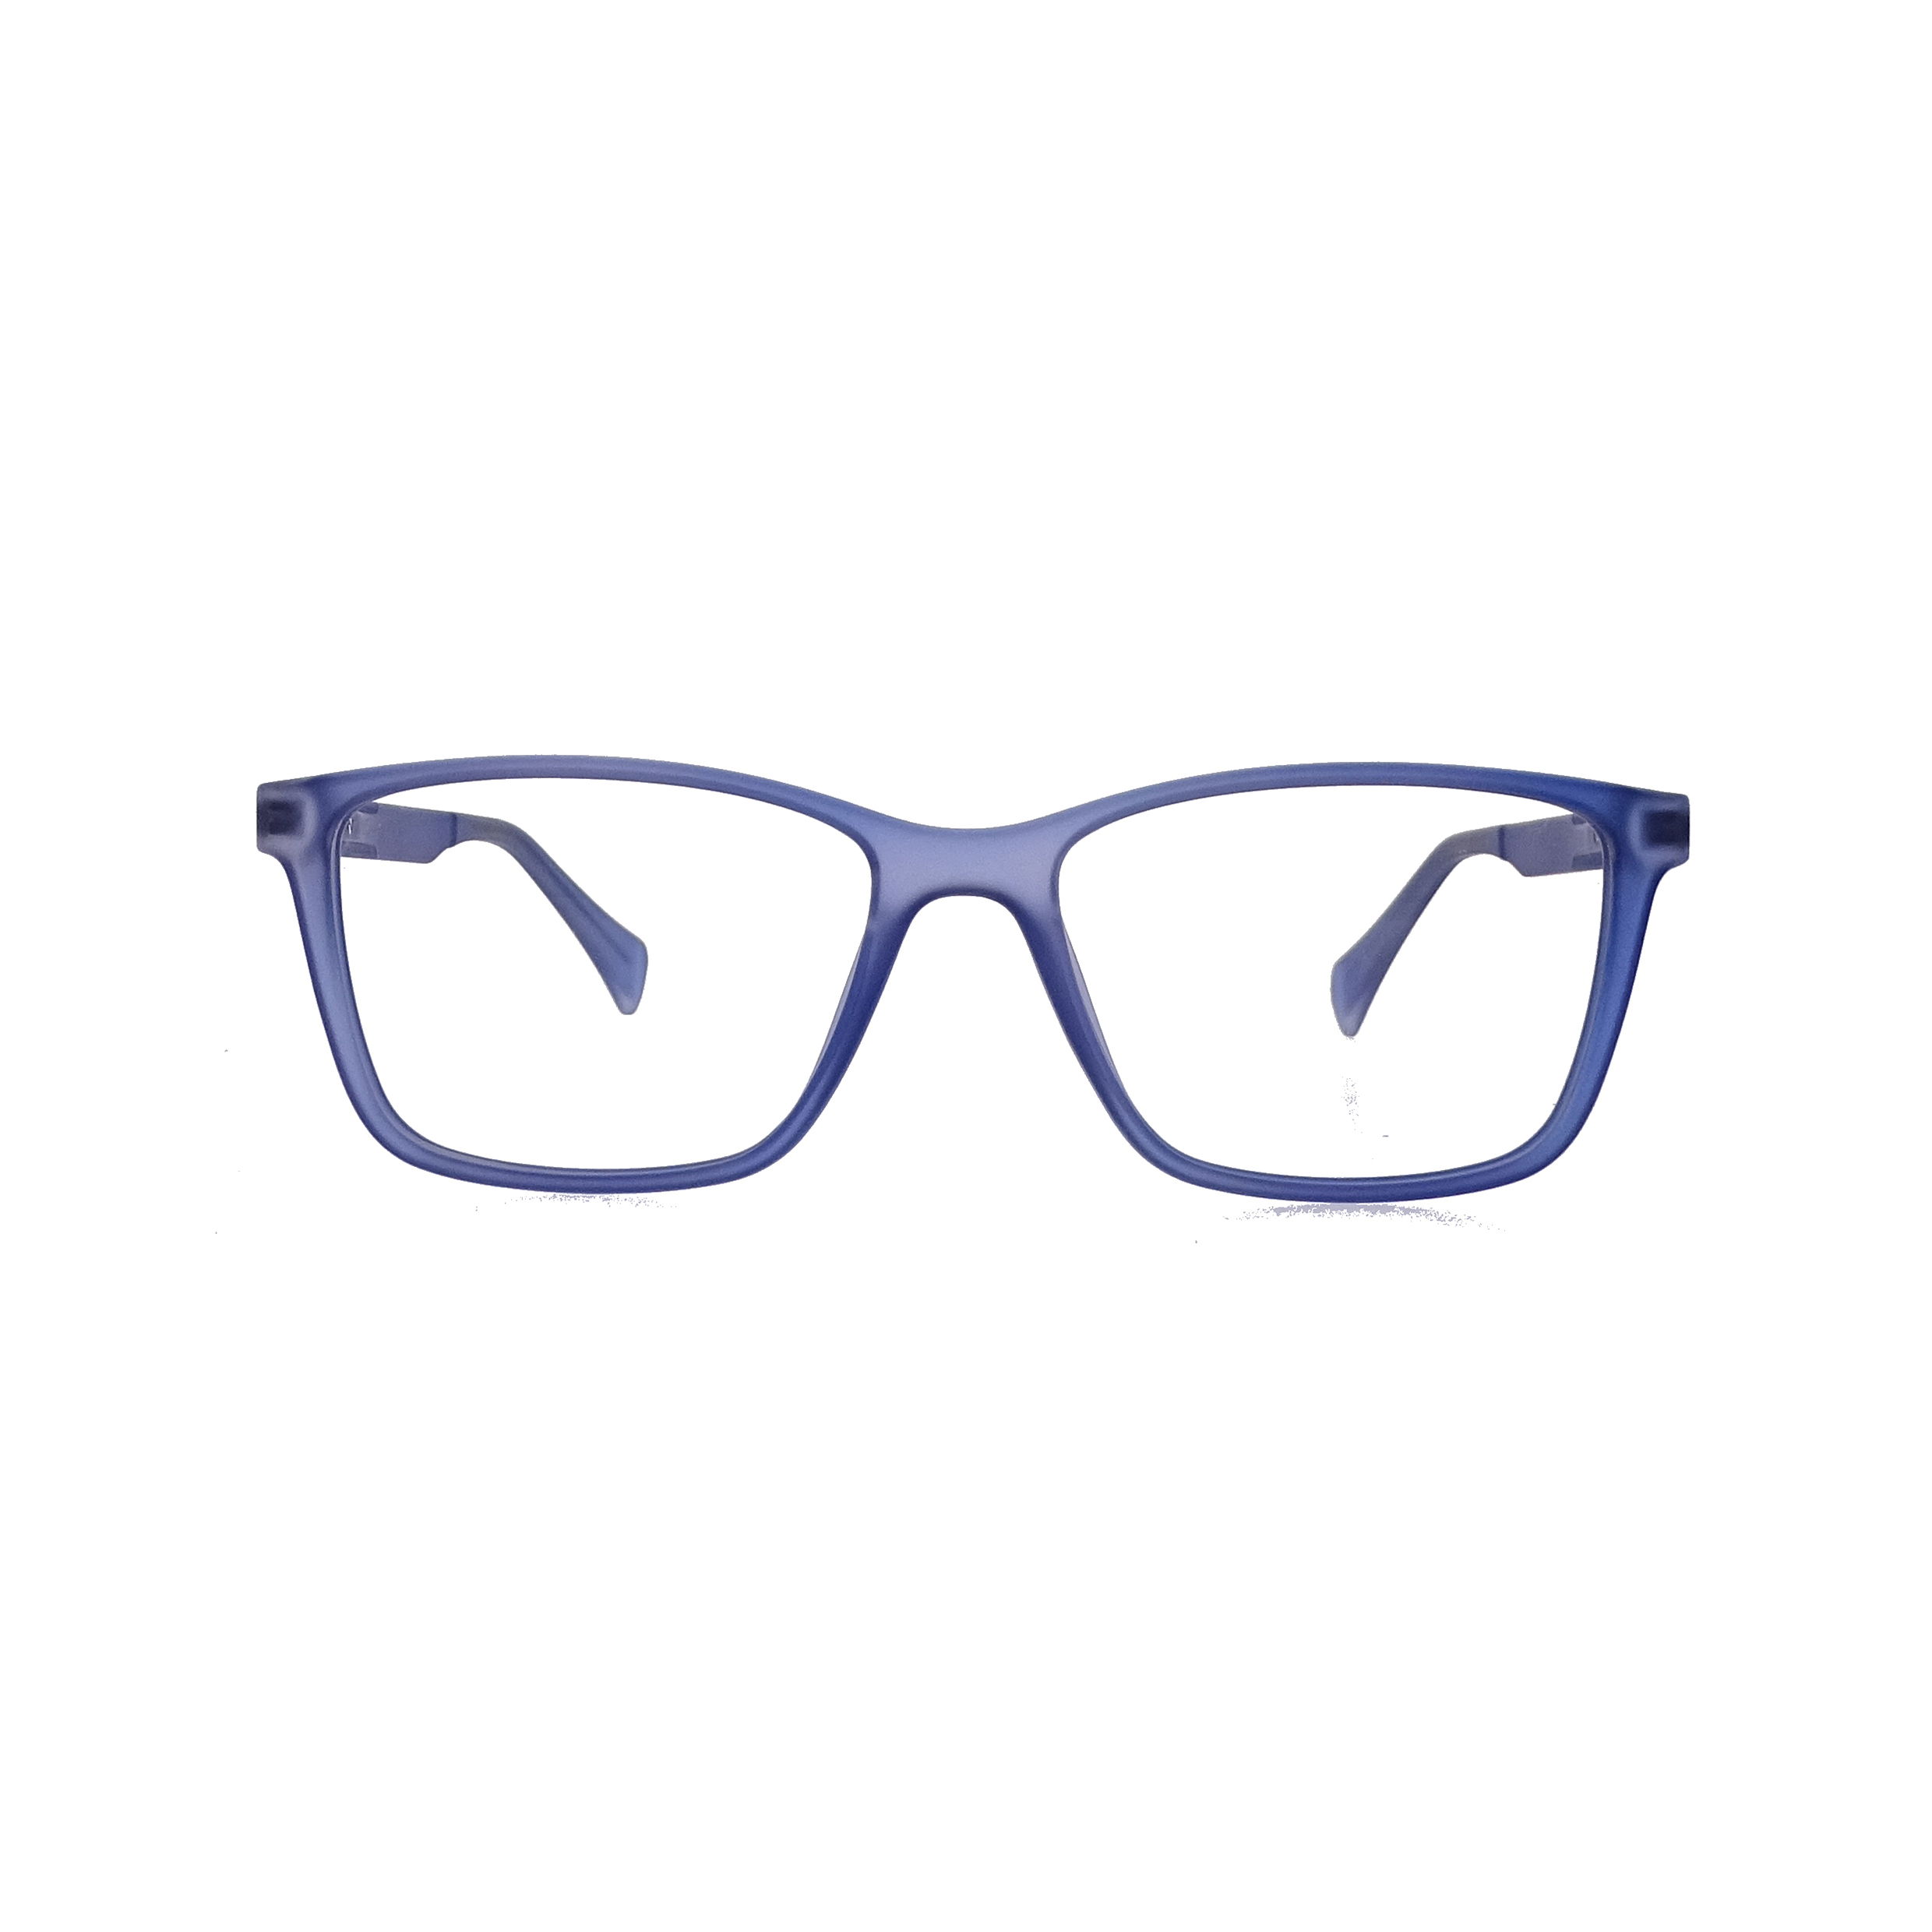 Latest-model spectacle frame TR optical frame eyewear LO-OT474